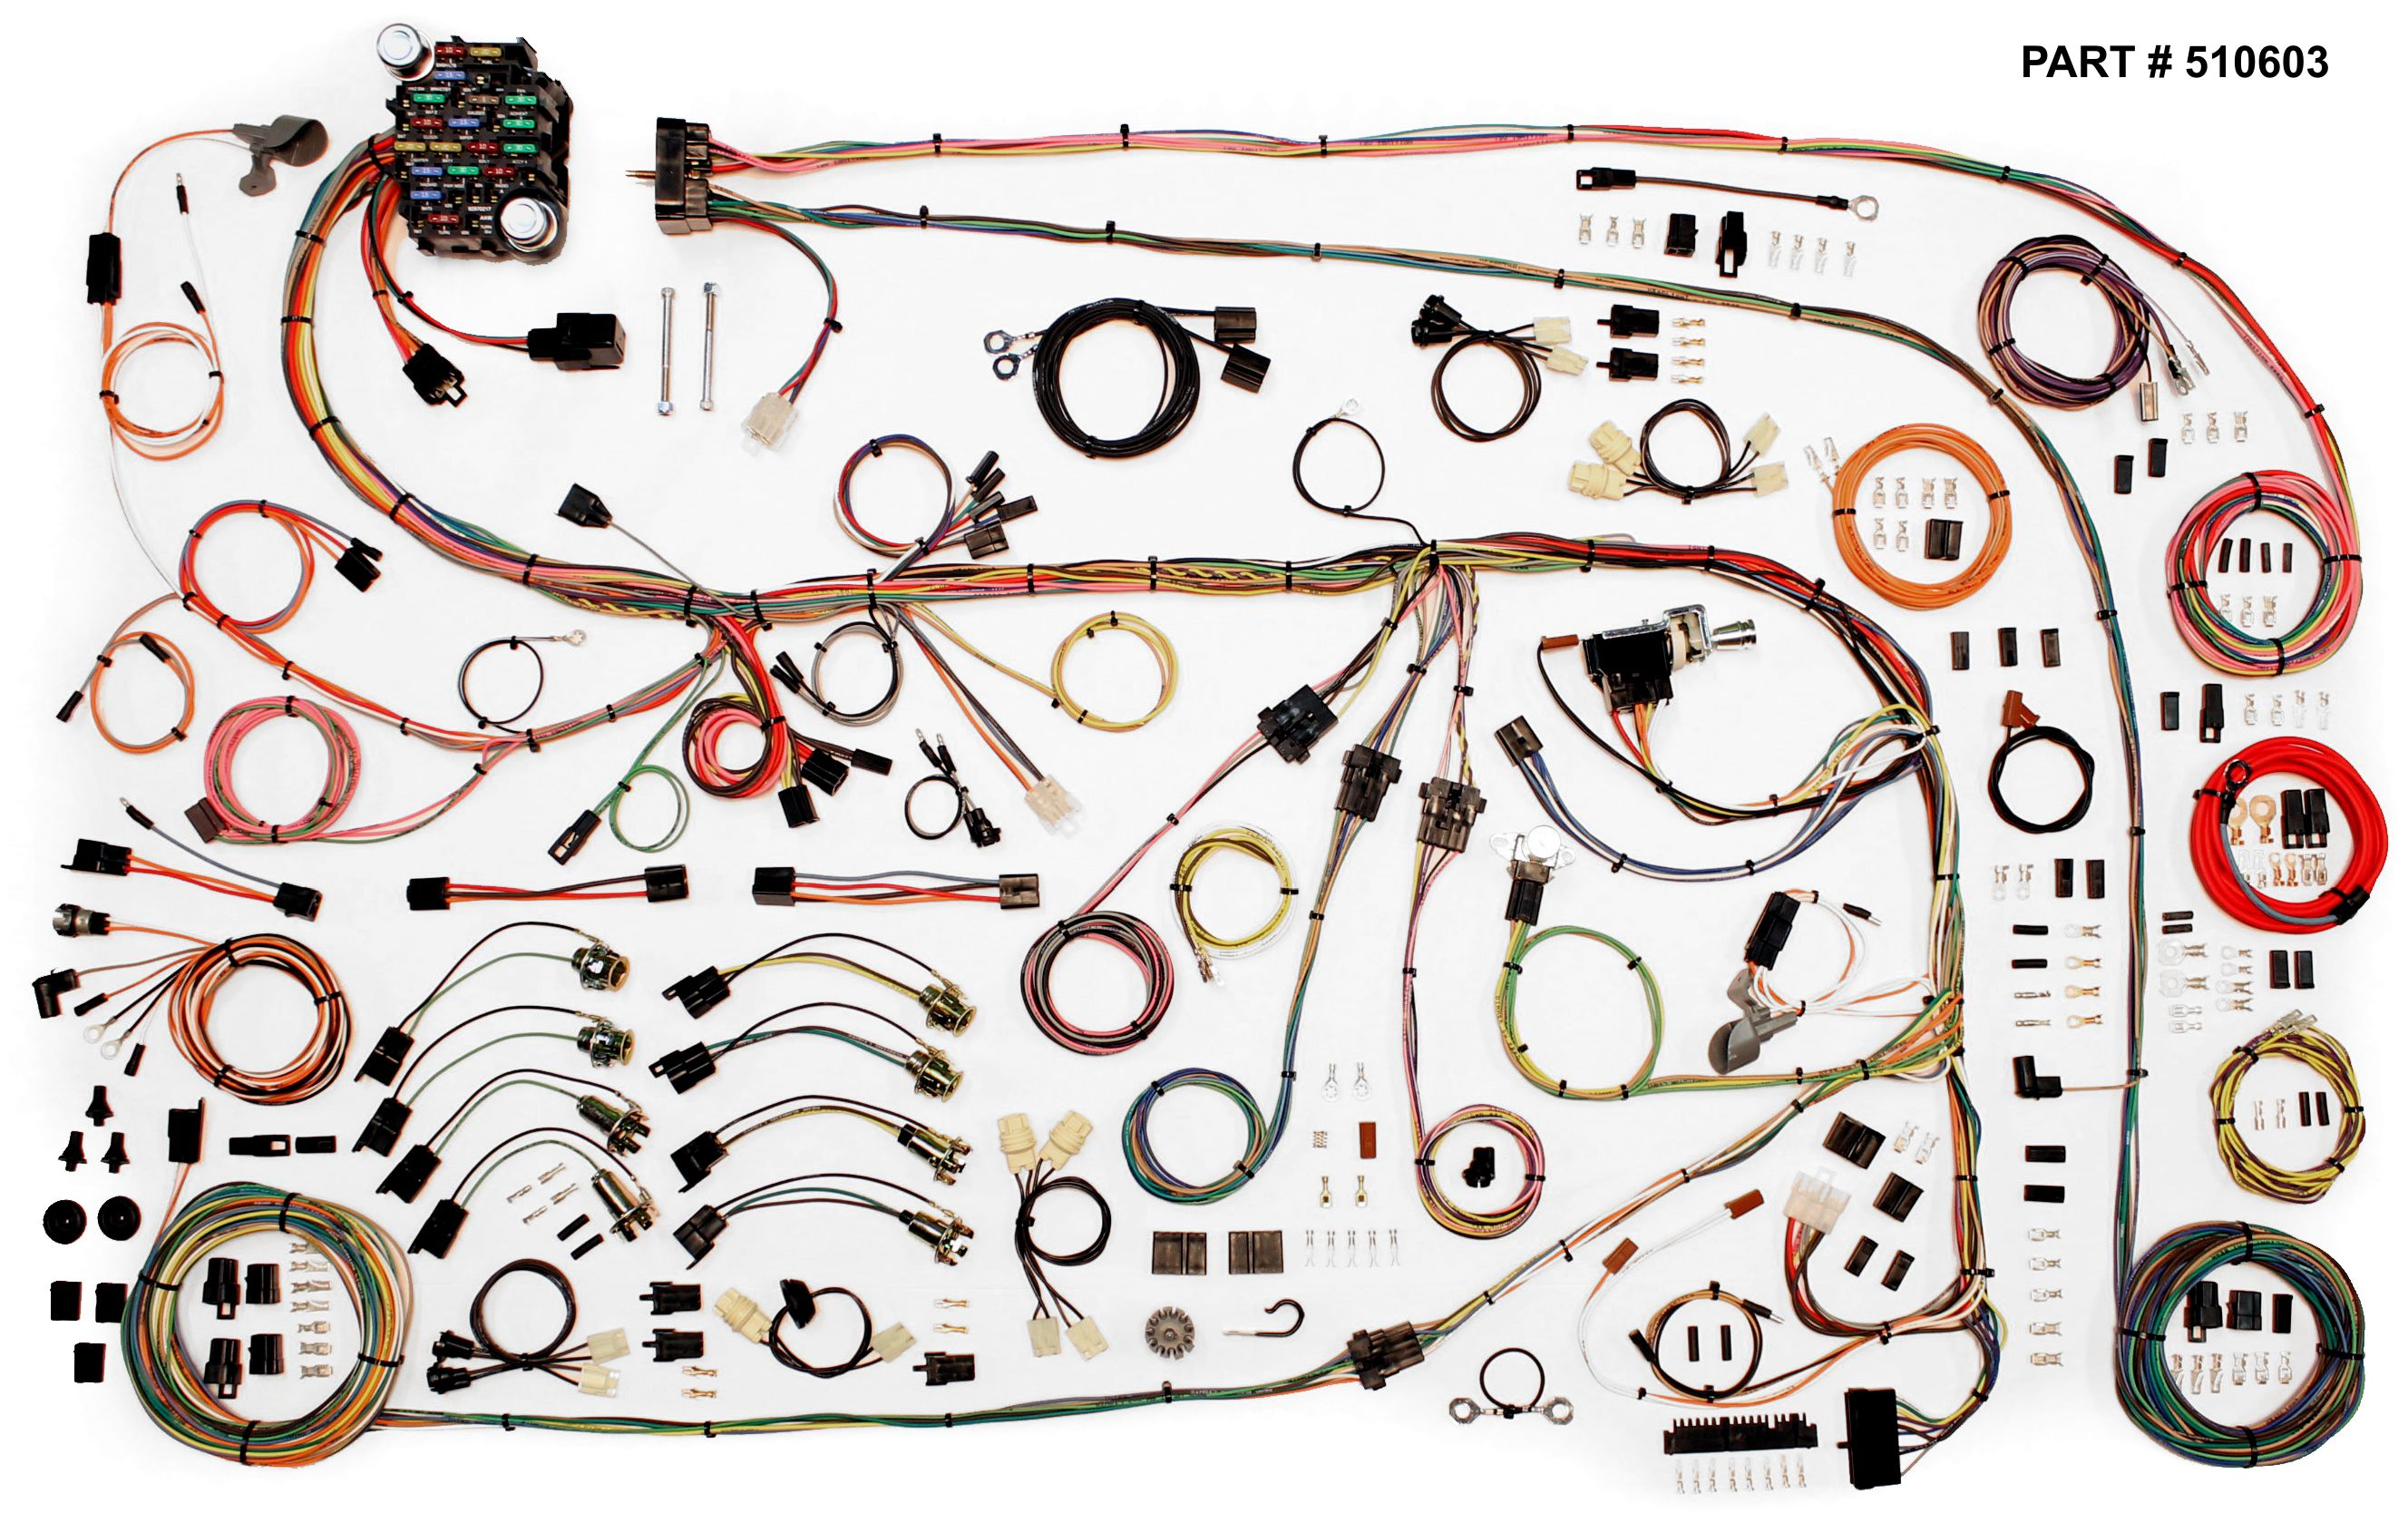 1967 1975 Chrysler A Body Restomod Wiring System 1970 Plymouth Satellite Diagram 75 Harness